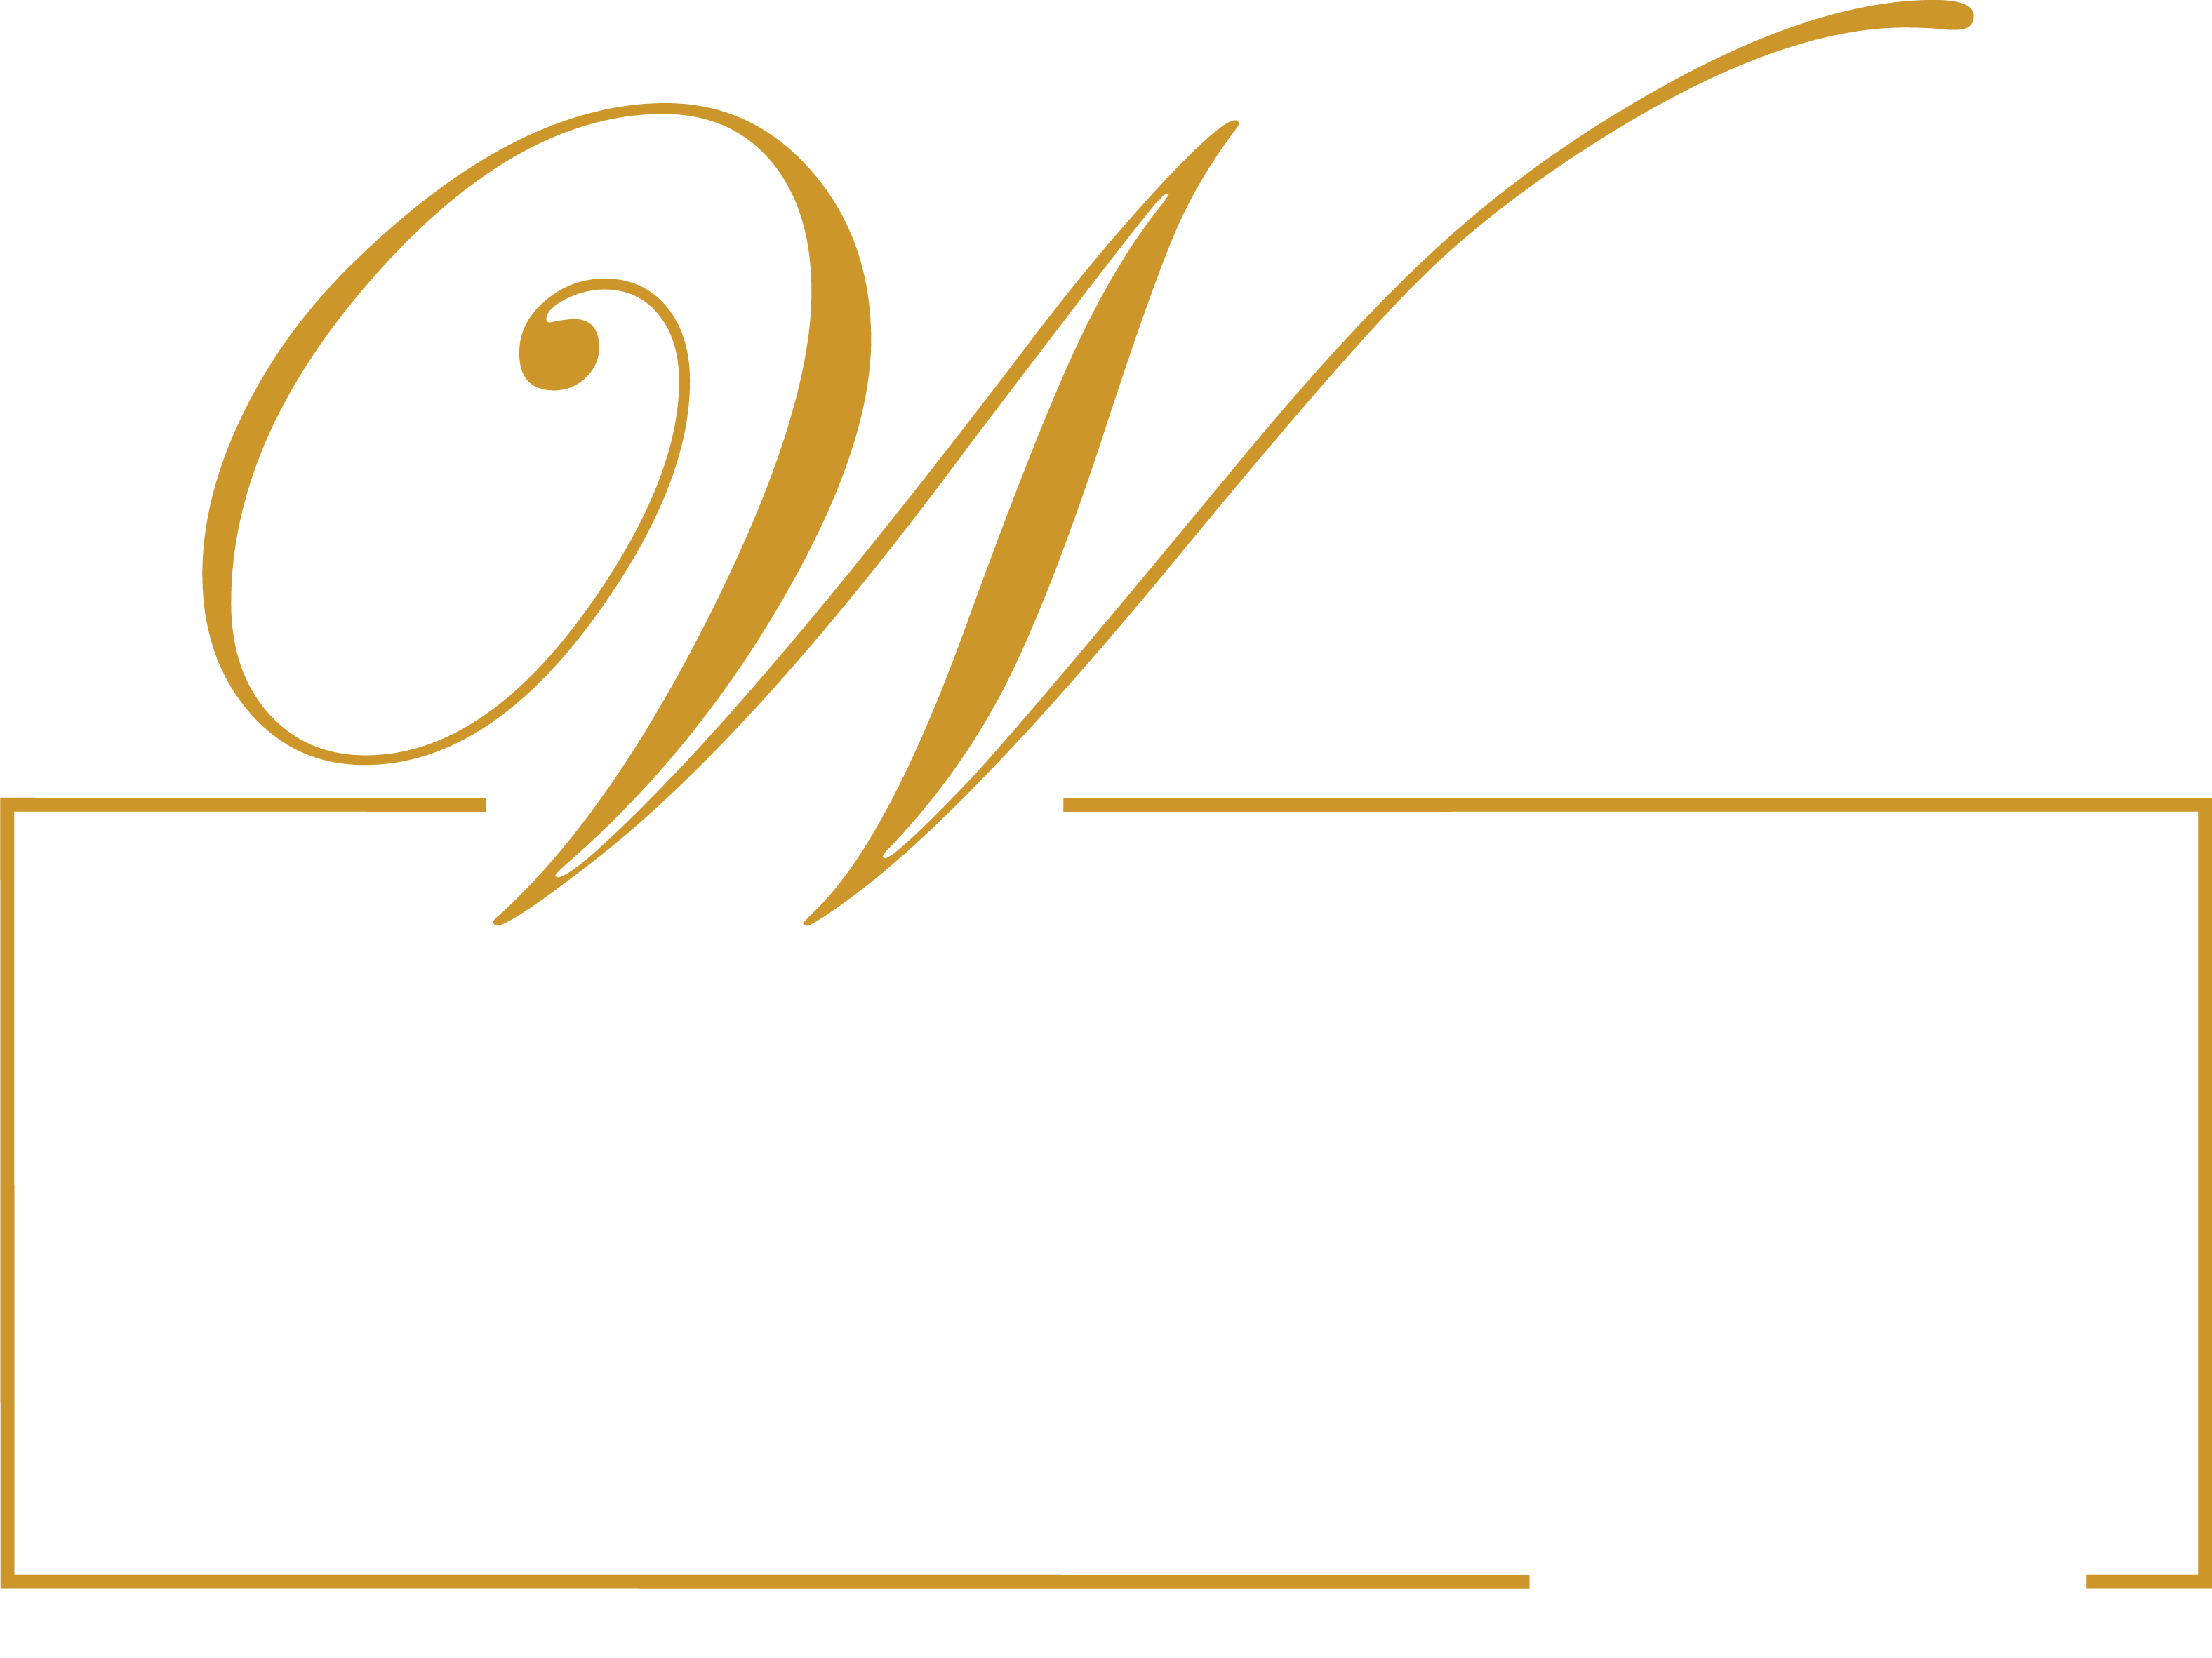 Windsor Industries